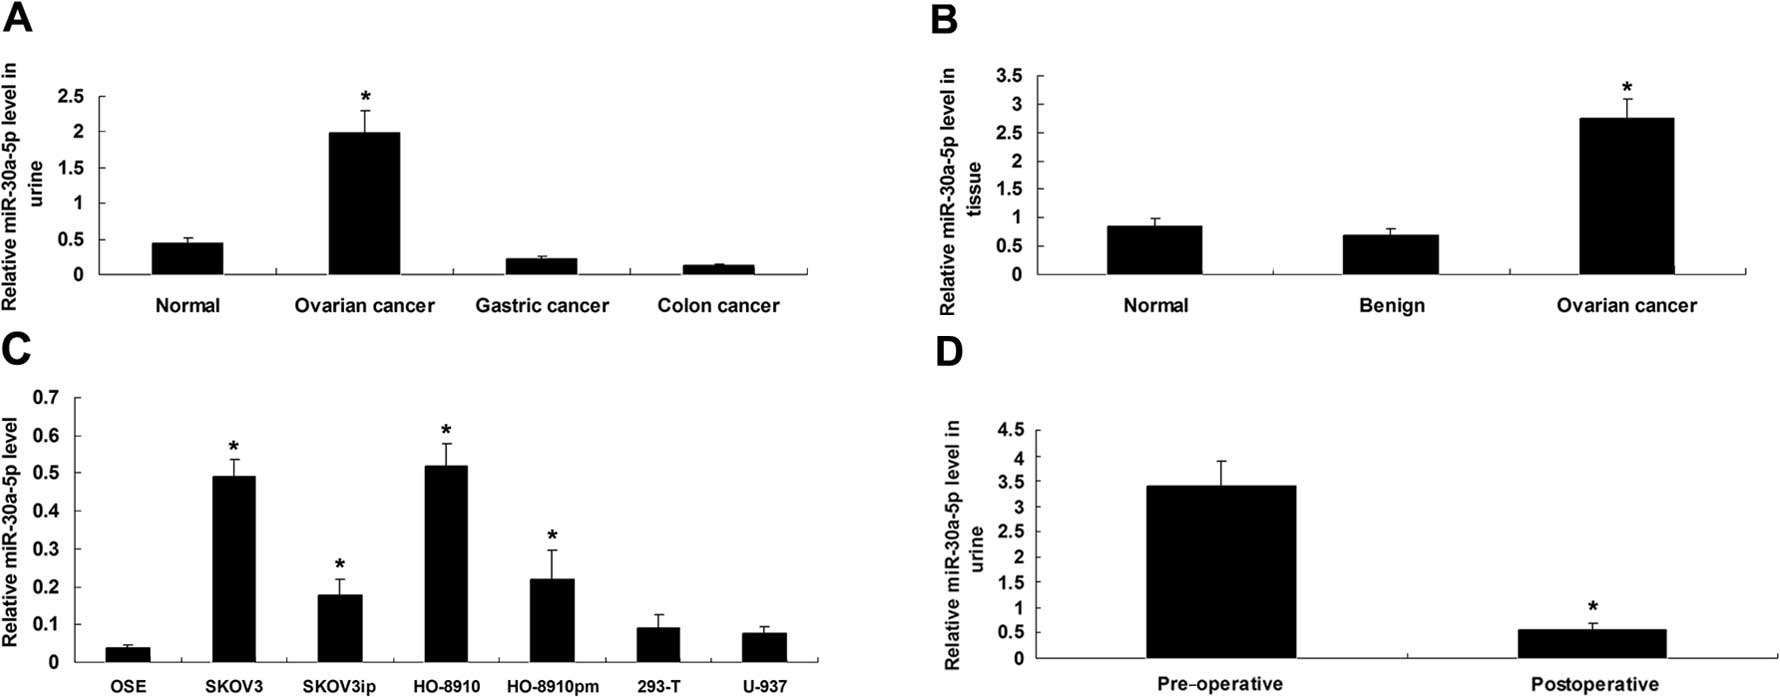 Urinary Microrna 30a 5p Is A Potential Biomarker For Ovarian Serous Adenocarcinoma